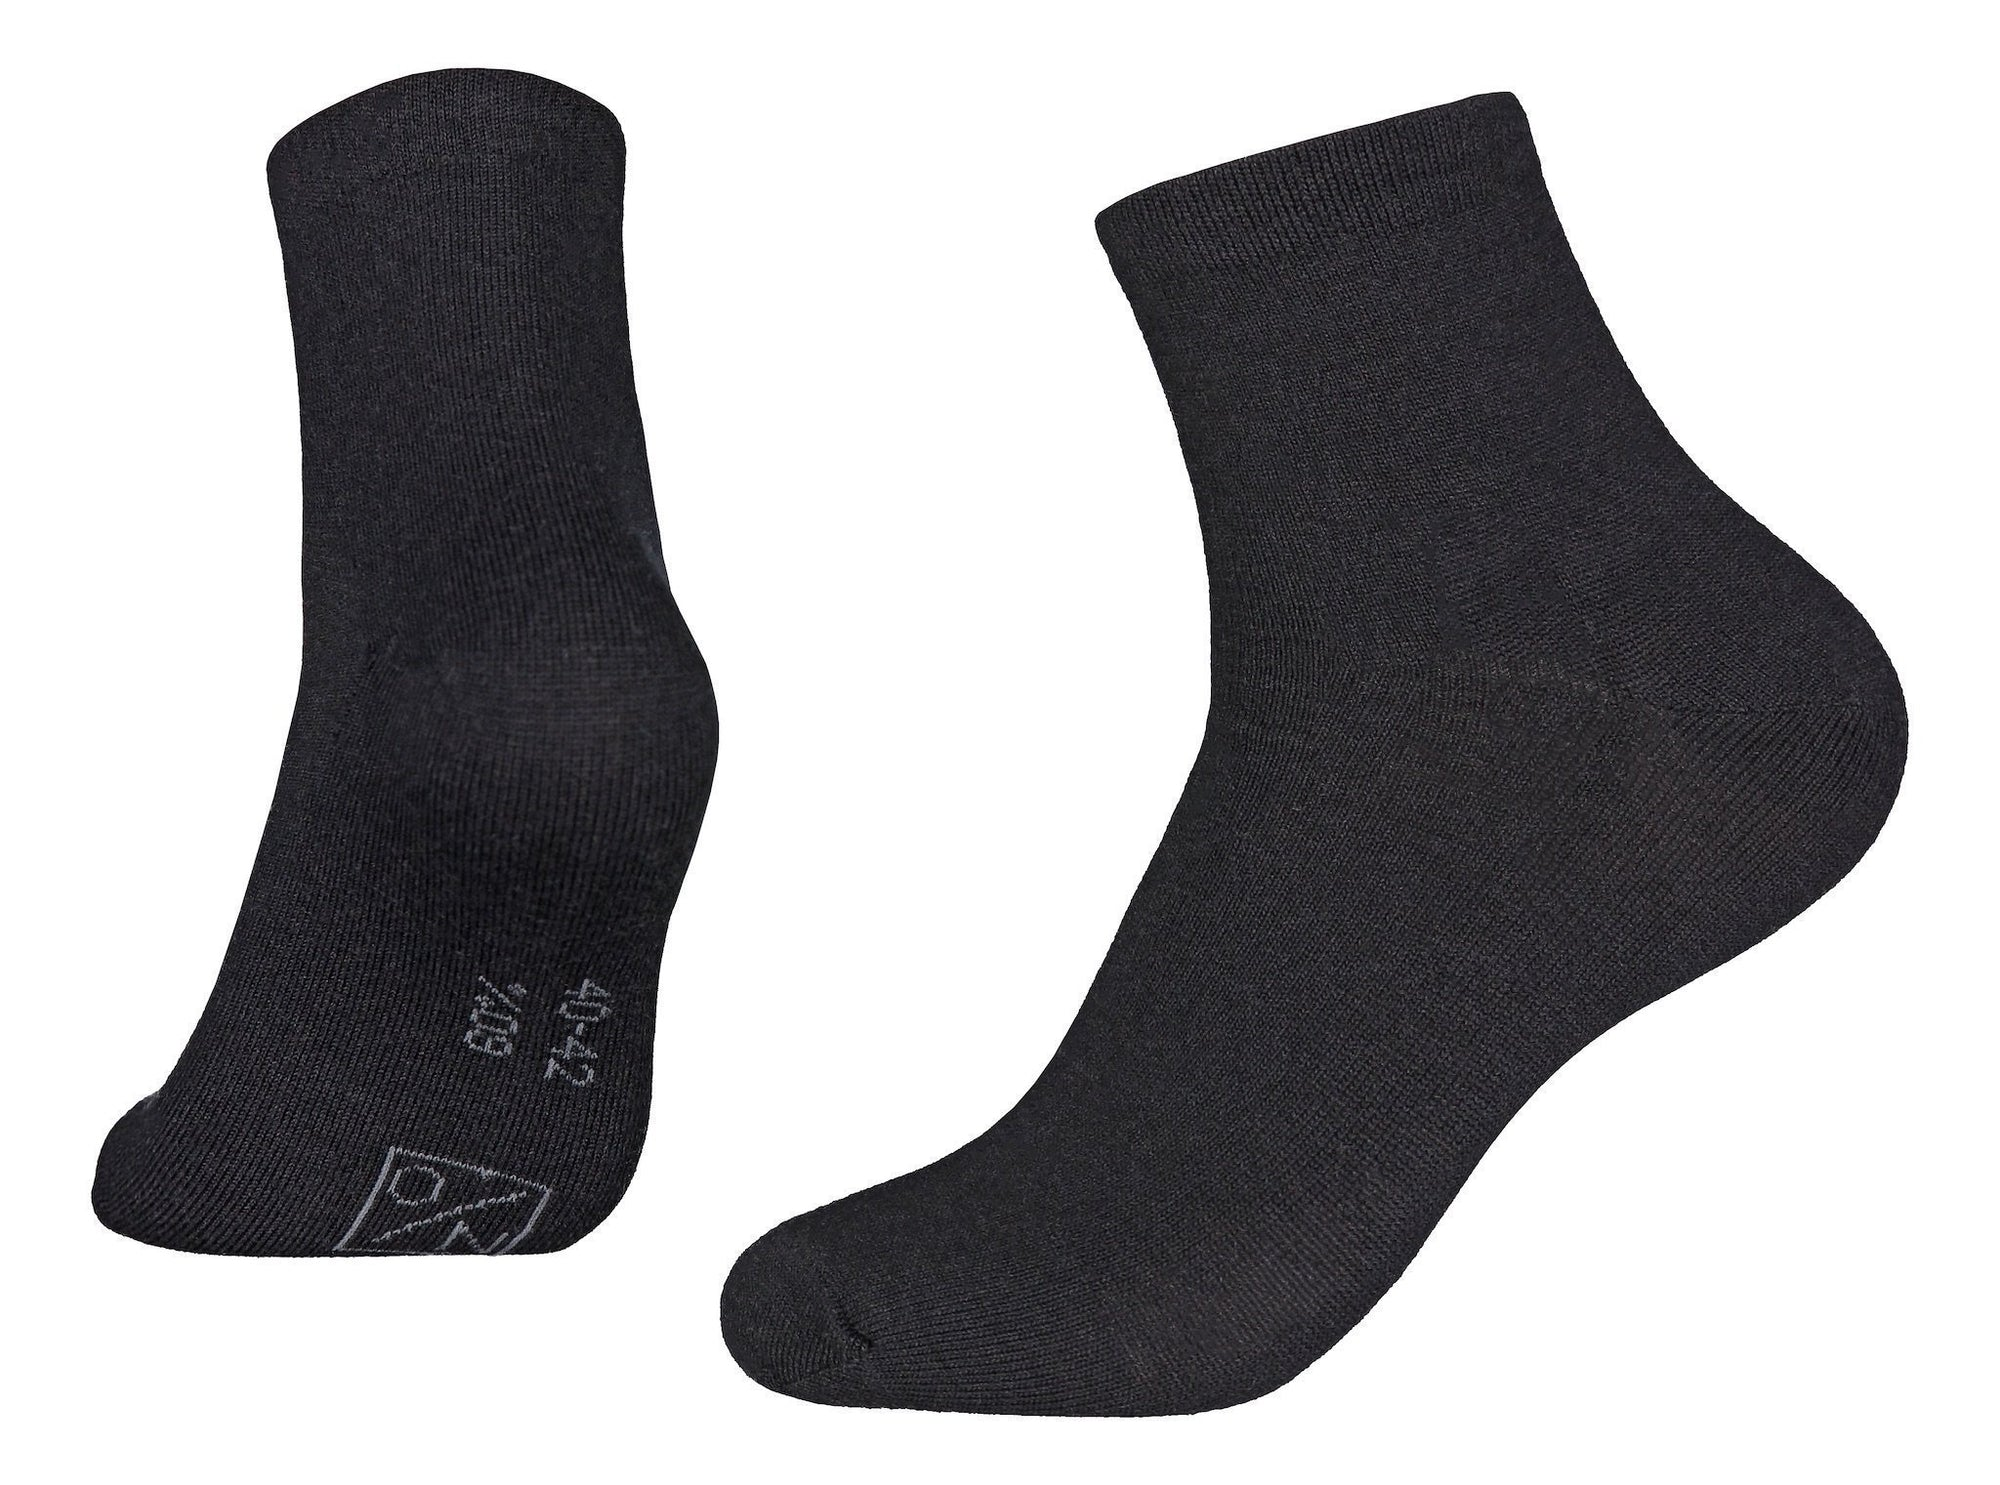 North Outdoor - Merino Wool Socks MID - Merino 60 - Weekendbee - sustainable sportswear